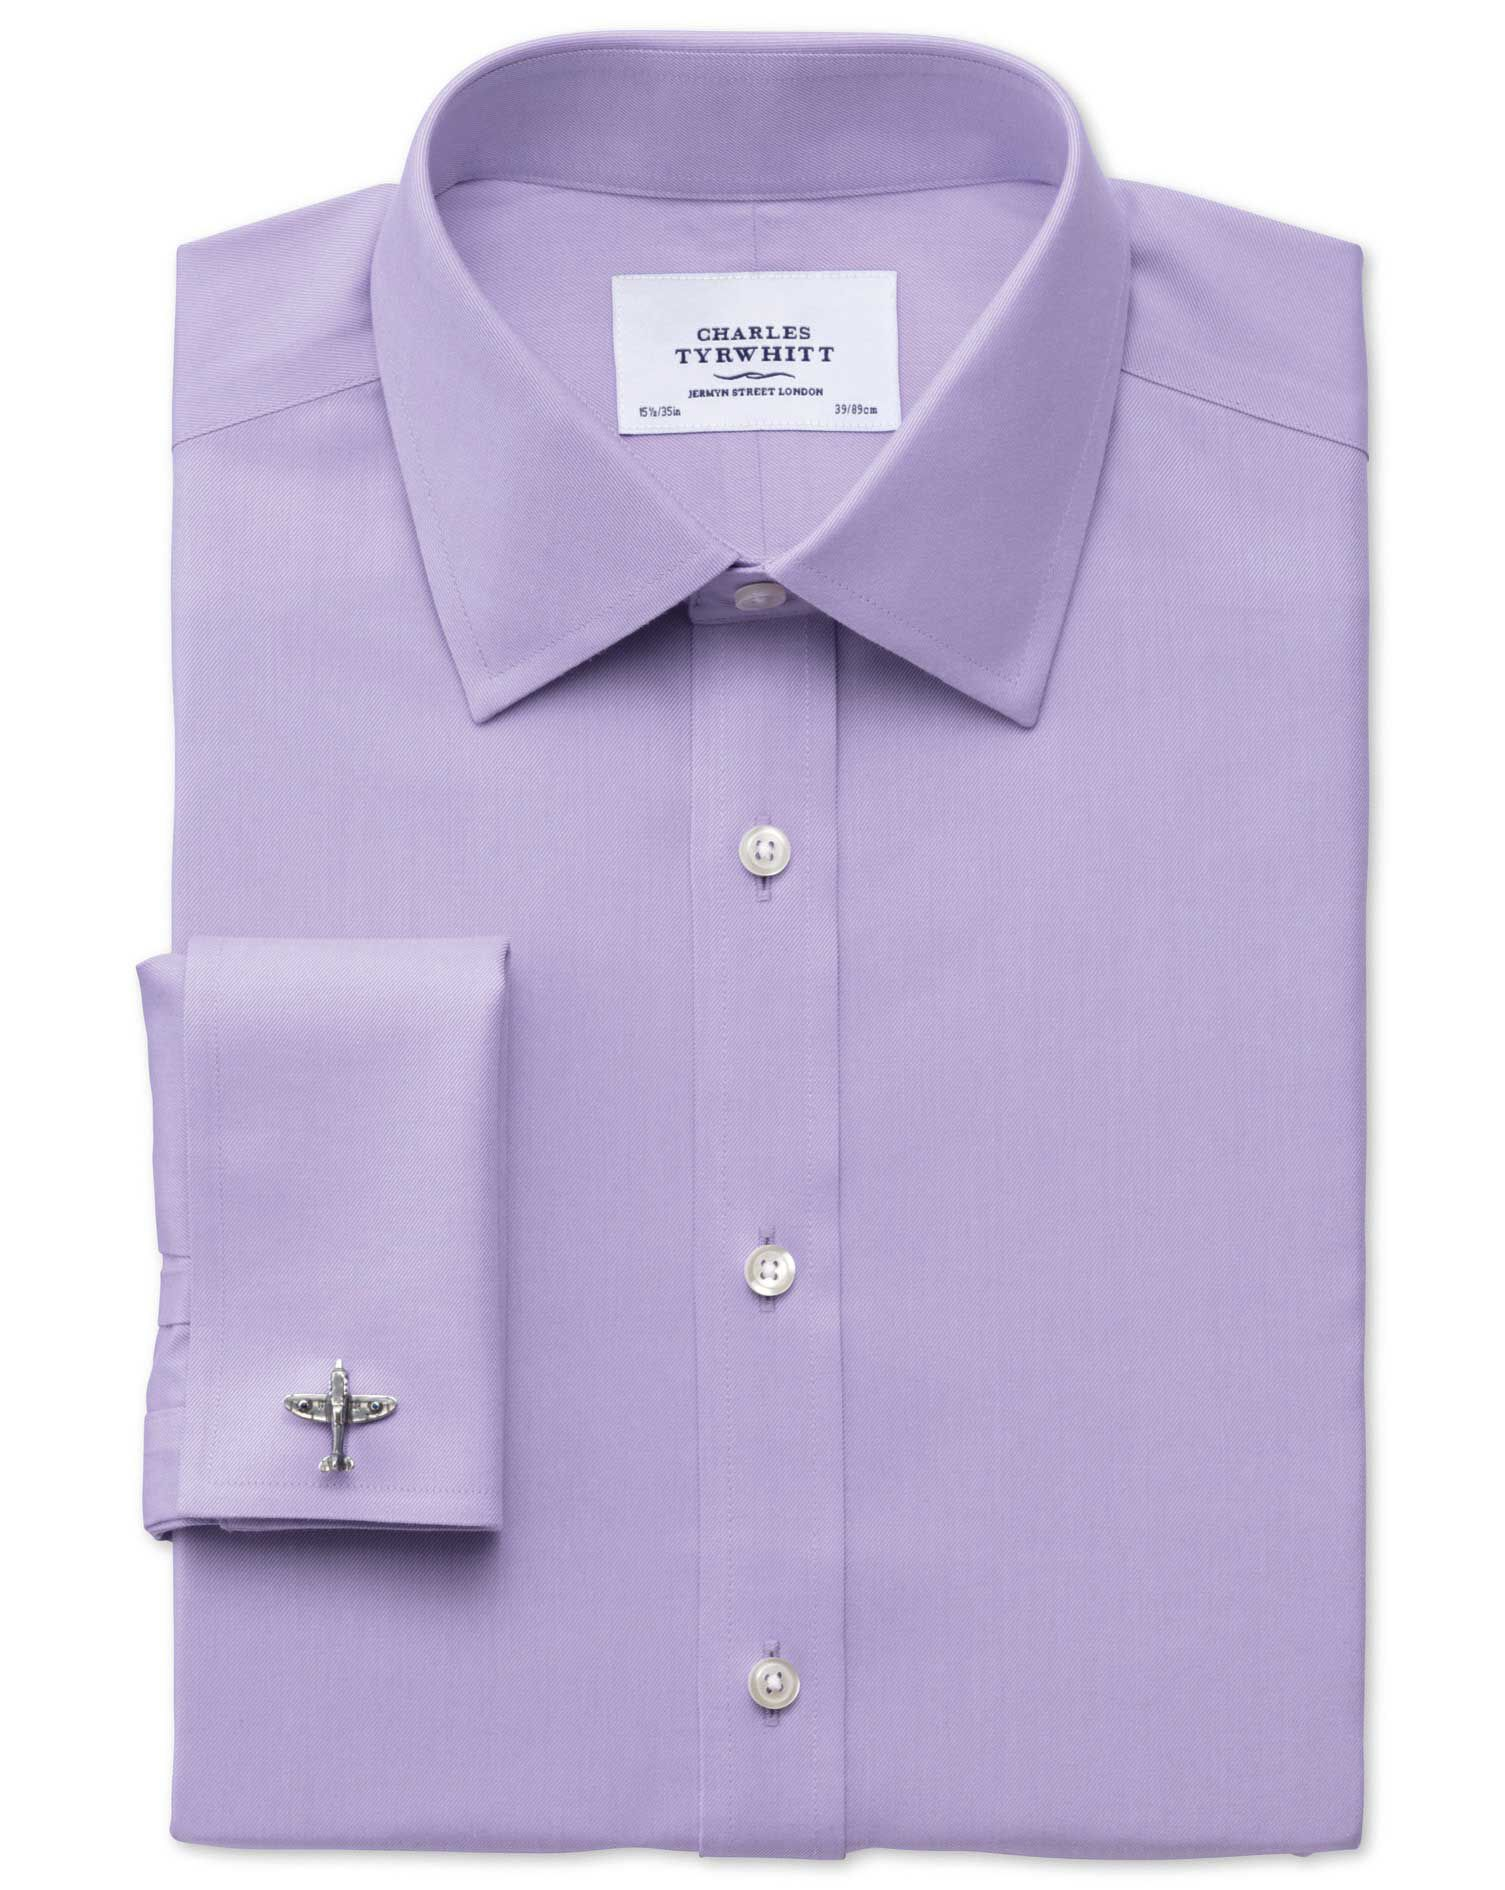 Classic Fit Non-Iron Twill Lilac Cotton Formal Shirt Single Cuff Size 16.5/36 by Charles Tyrwhitt